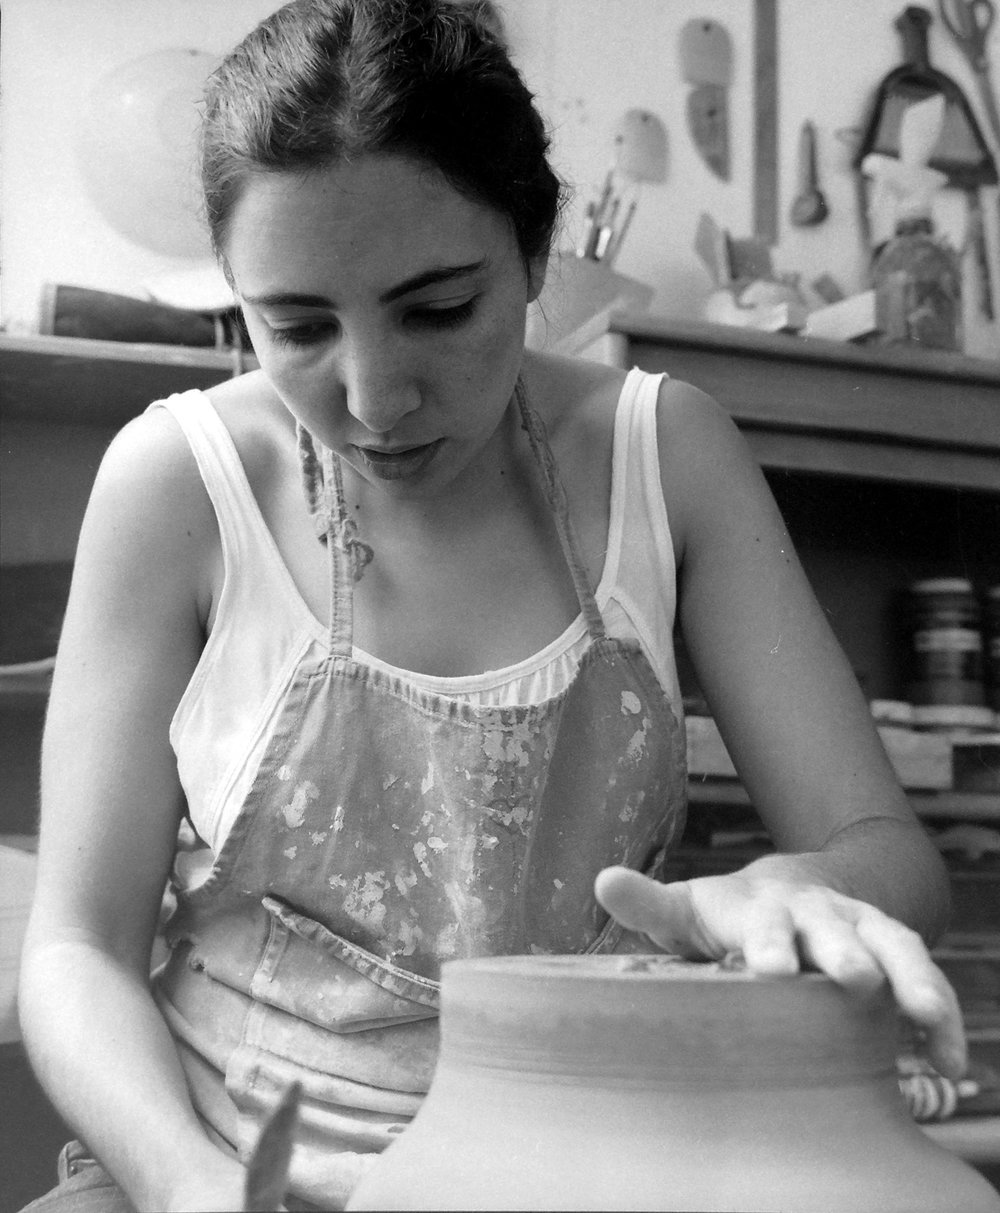 Laila Salomon - Laila Salomon is a designer based in Mexico City, currently working and experimenting with clay. The story behind each object, its materiality, its functionality and how it affects our everyday lives, shapes her work. Her passion for mountains and nature has uncovered an array of textures and colors that have become a source of inspiration in her search to create unique pieces.For Laila, research, experimentation and details are the most essential aspects of her creative process, with results in objects made with patience and dedication.